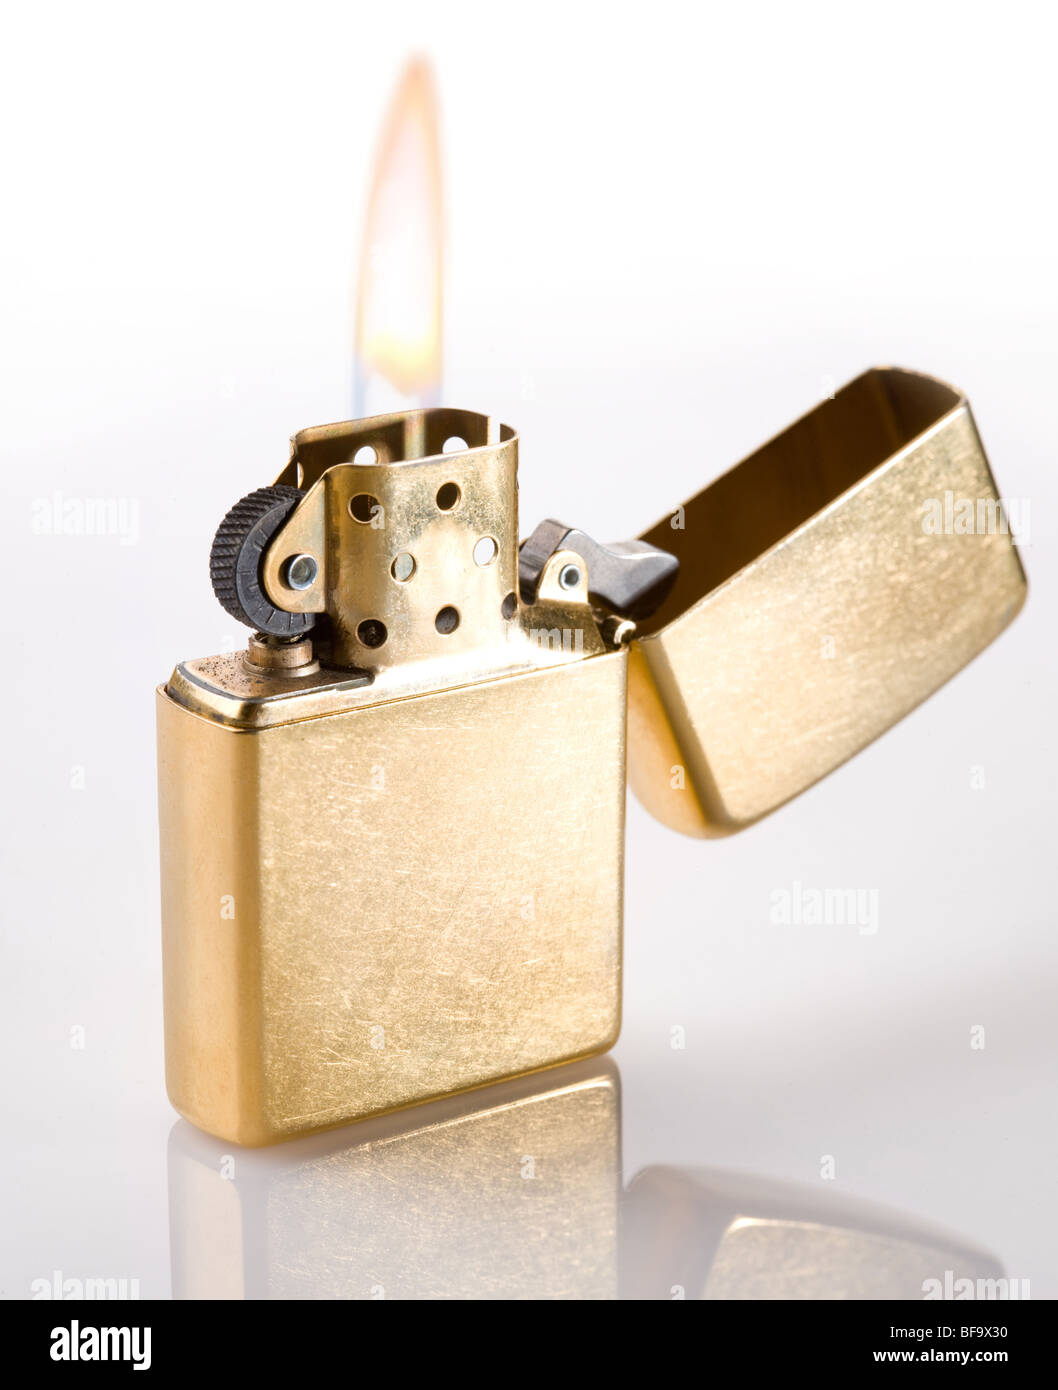 Flaming golden lighter on a white background - Stock Image